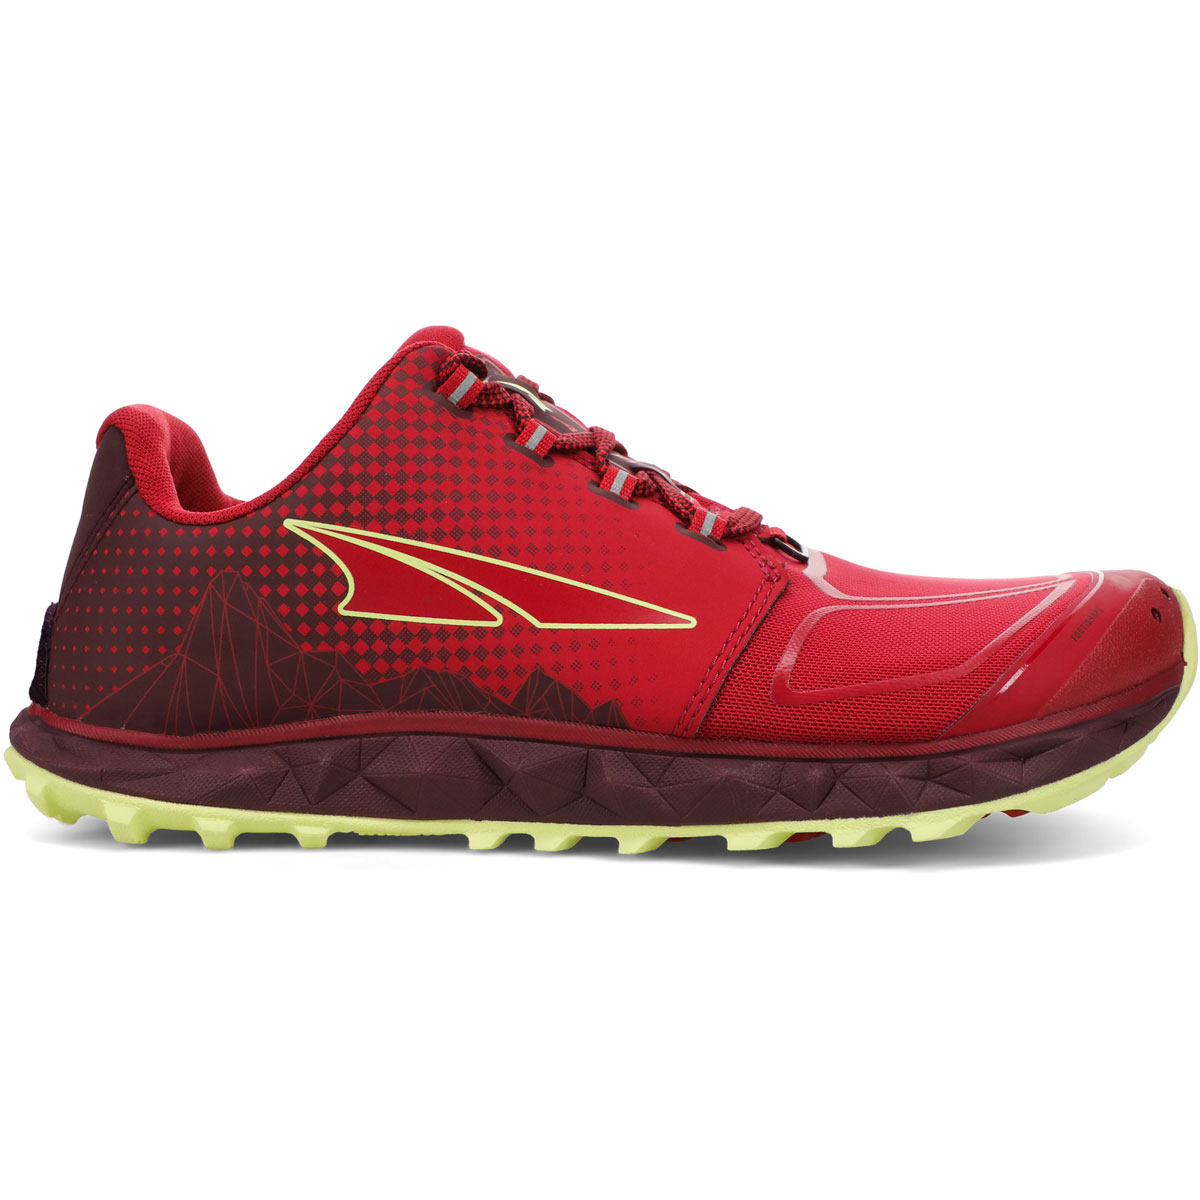 Women's Altra Superior 4.5 Trail Running Shoe - Color: Raspberry - Size: 5.5 - Width: Regular, Raspberry, large, image 1